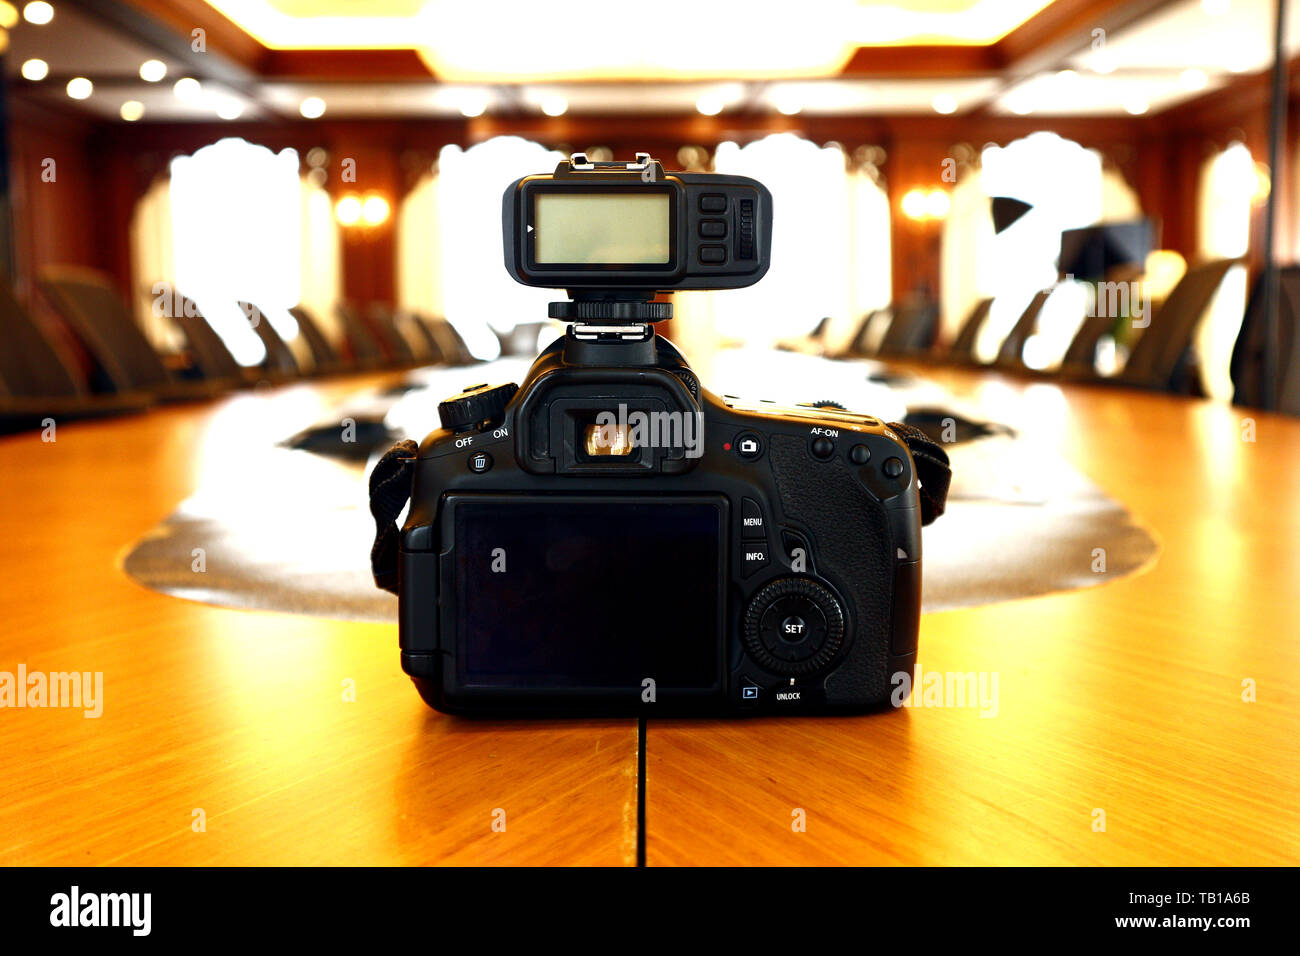 Photo of a Digital Single Lens Reflex Camera on a boardroom table - Stock Image